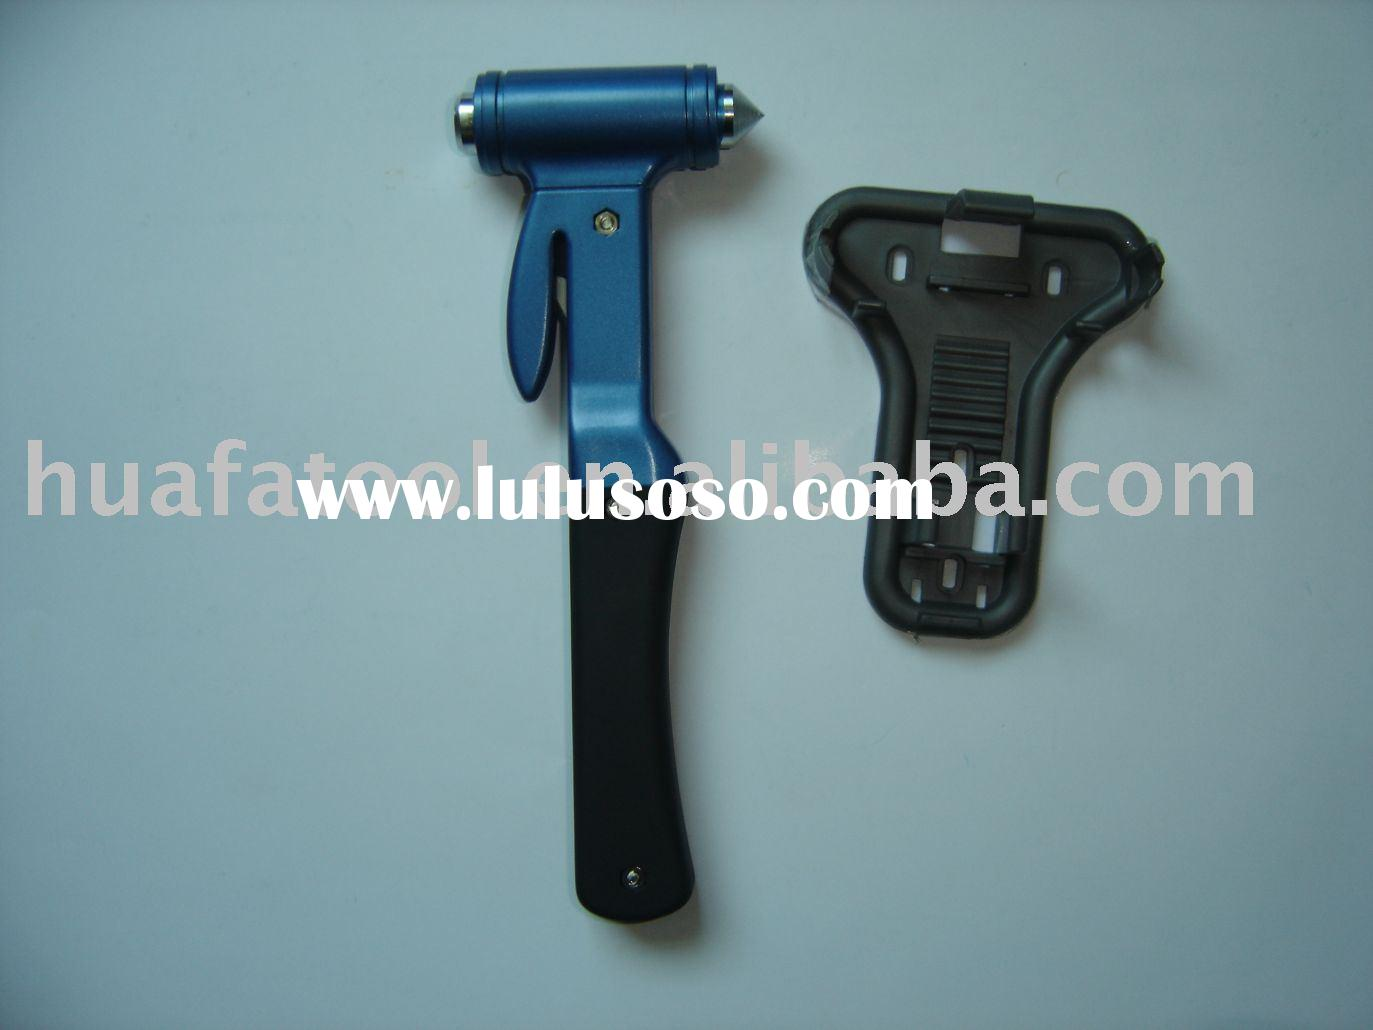 safety hammer,car emergency hammer,life hammer,escape hammer,emergency tools,car hammer,led emergenc